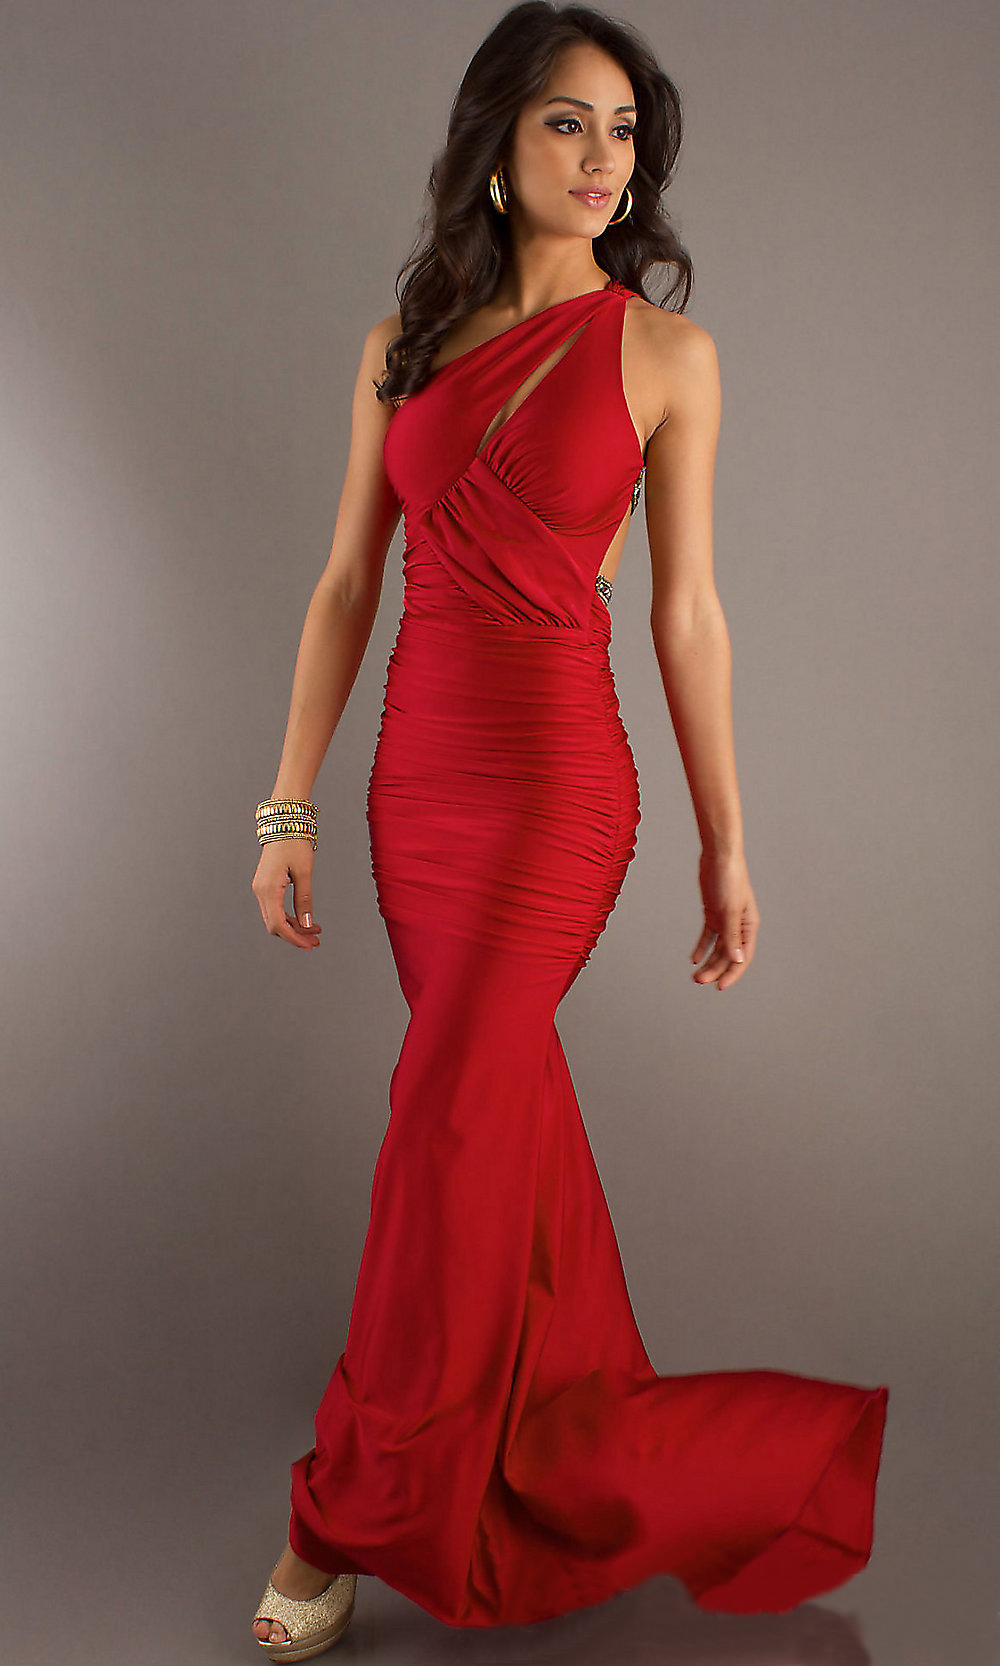 Cheap Red Prom Dresses - Nini Dress